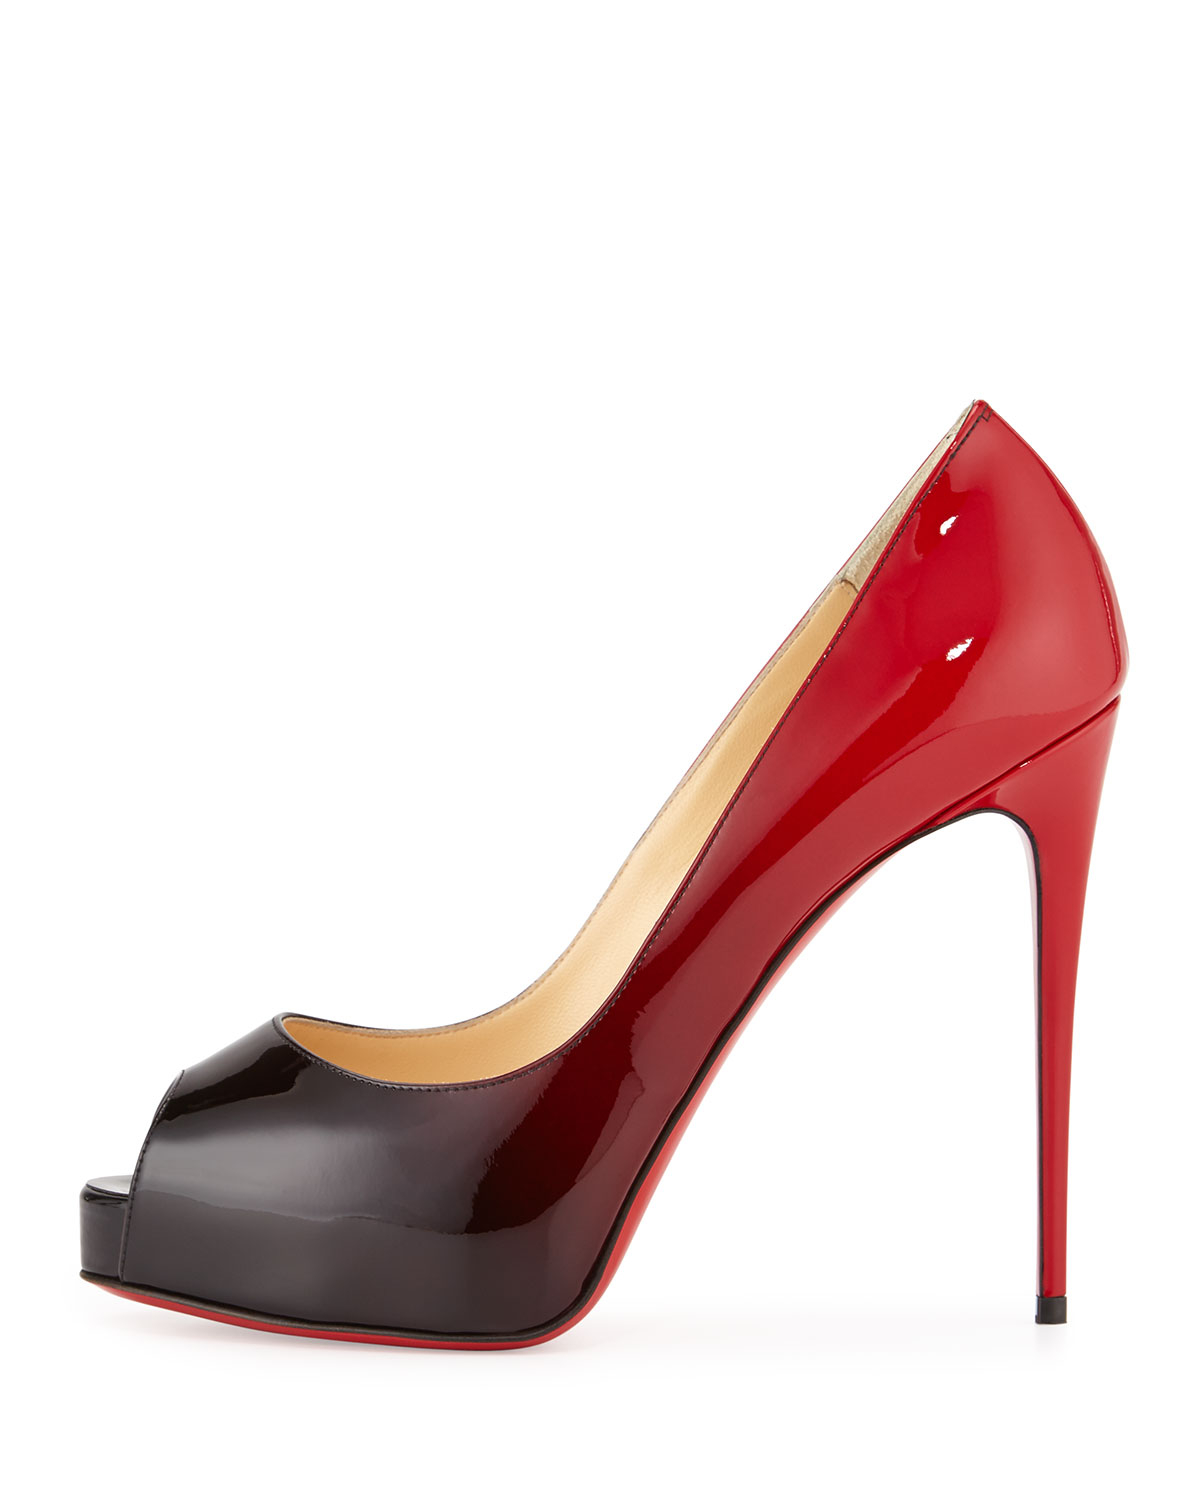 9214a467393b Gallery. Previously sold at  Bergdorf Goodman · Women s Christian Louboutin  Very Prive